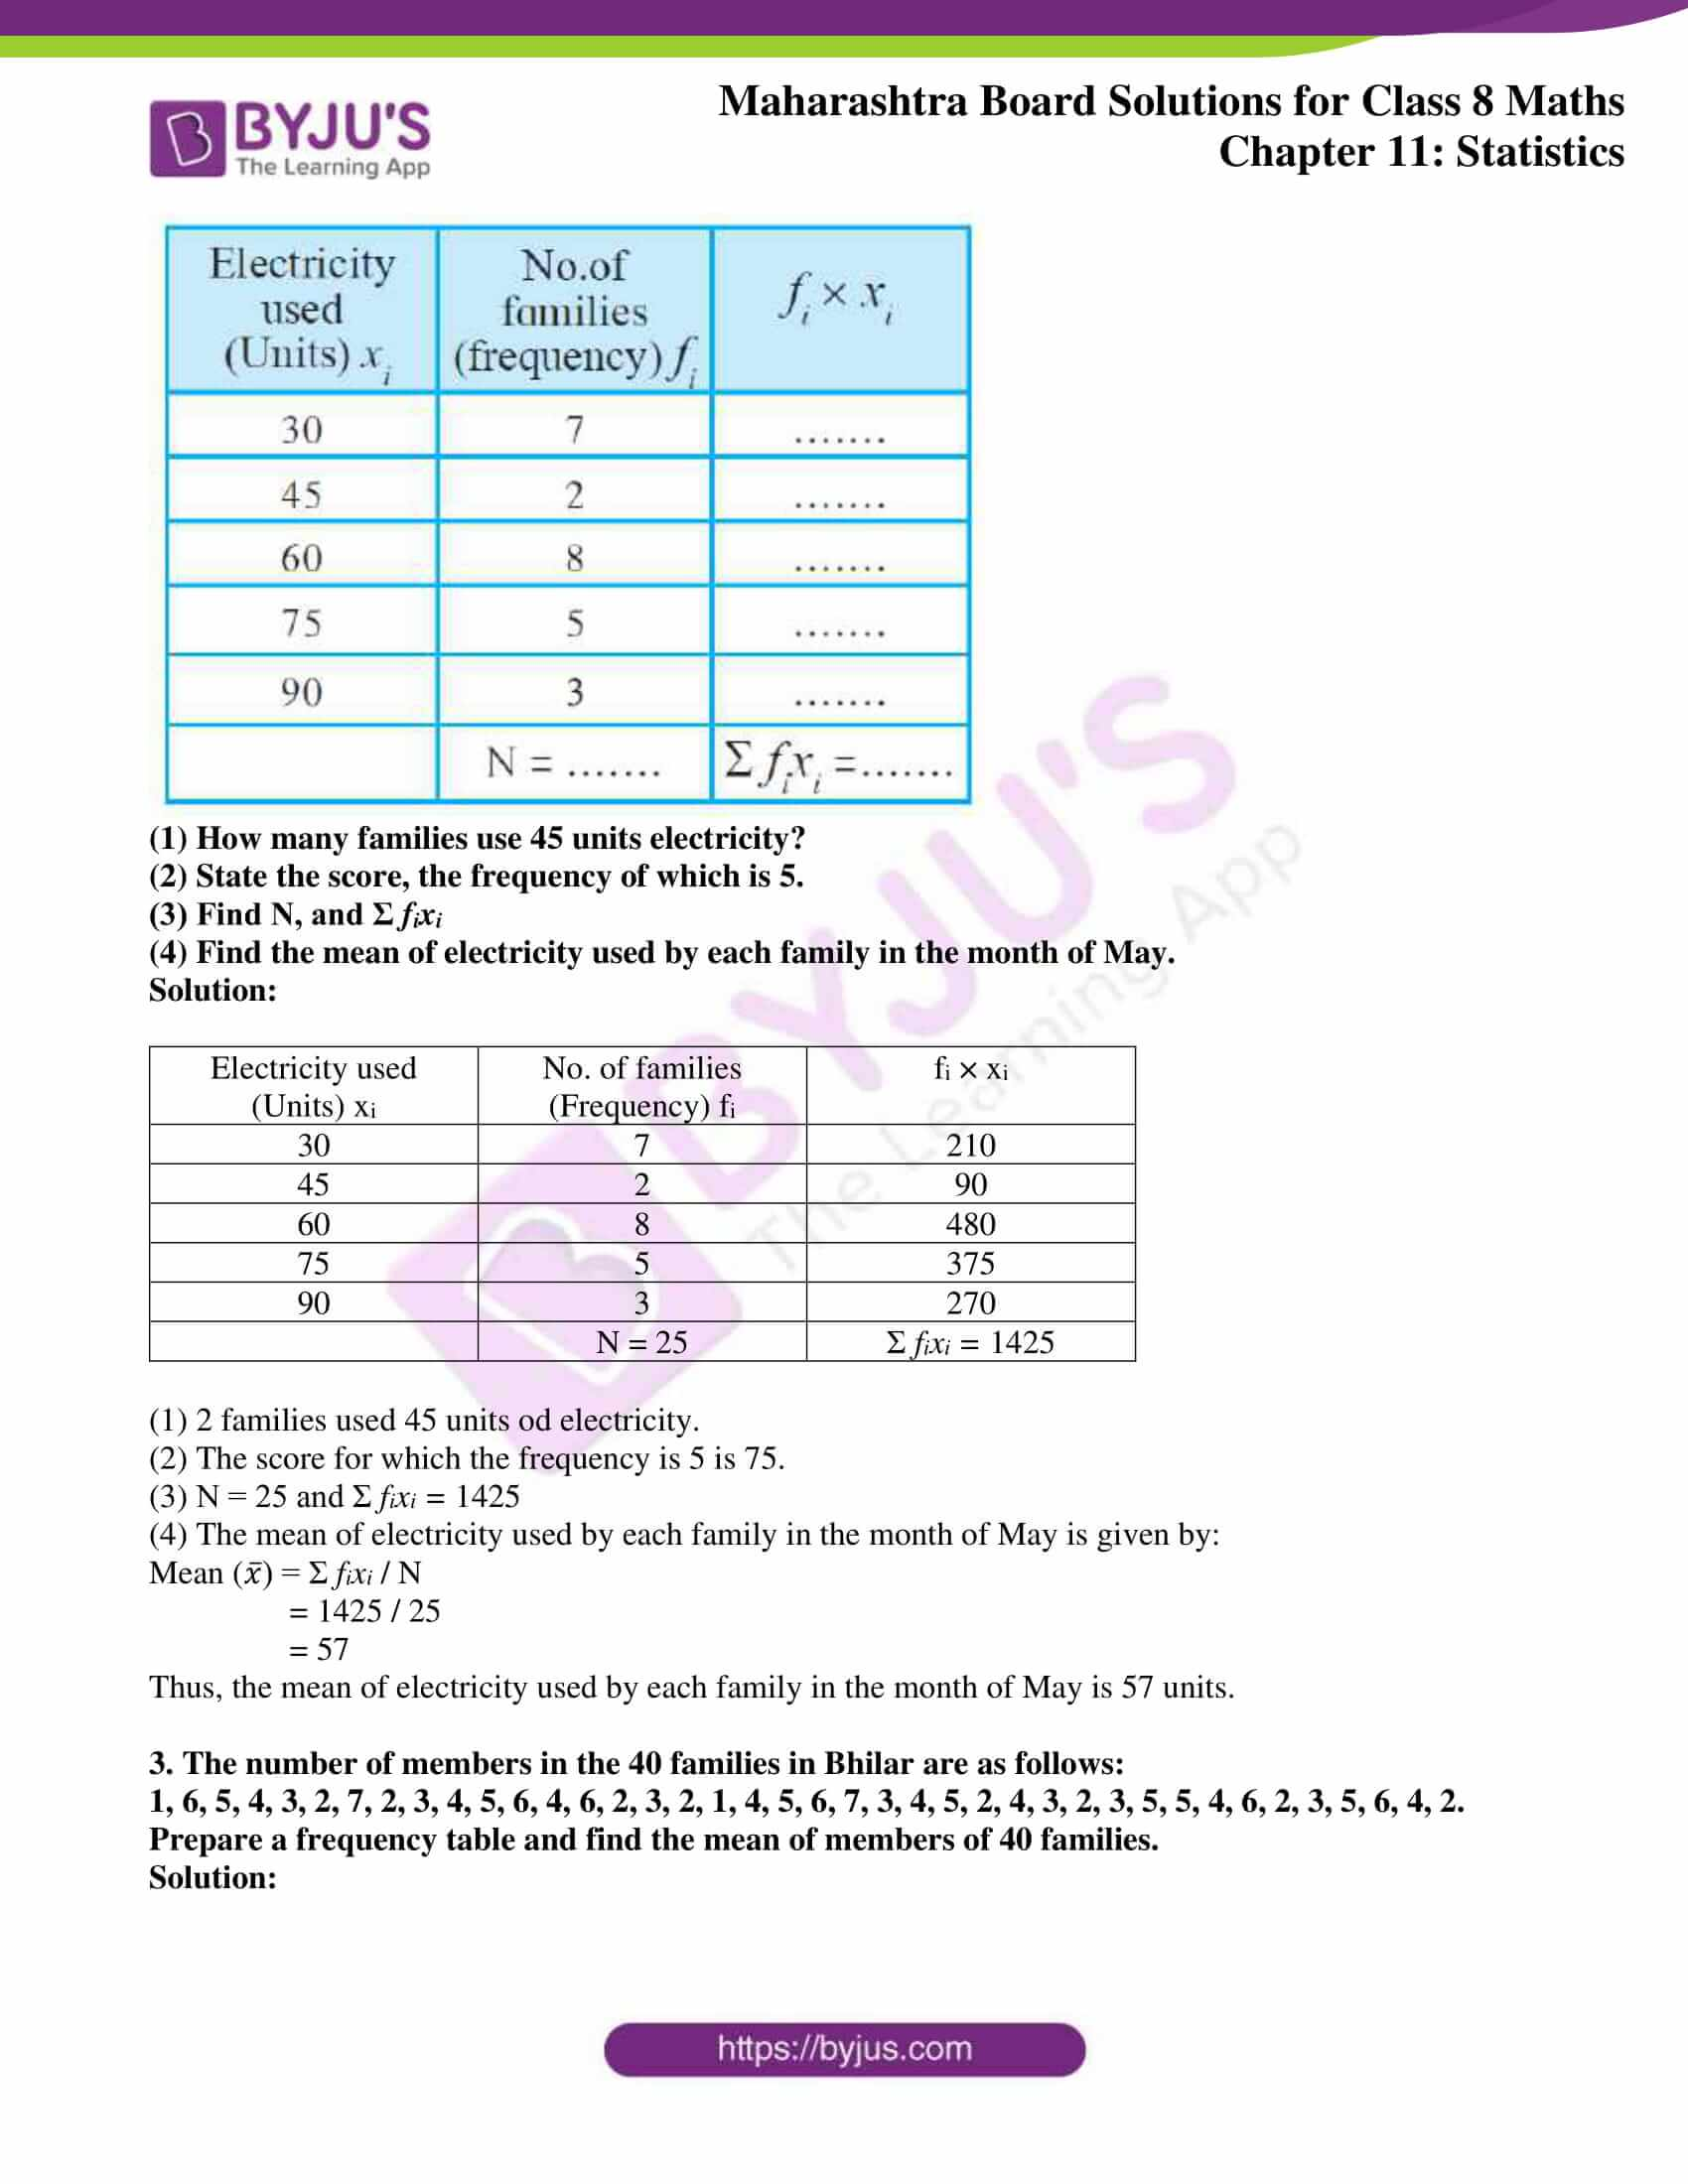 msbshse solutions for class 8 maths chapter 11 02